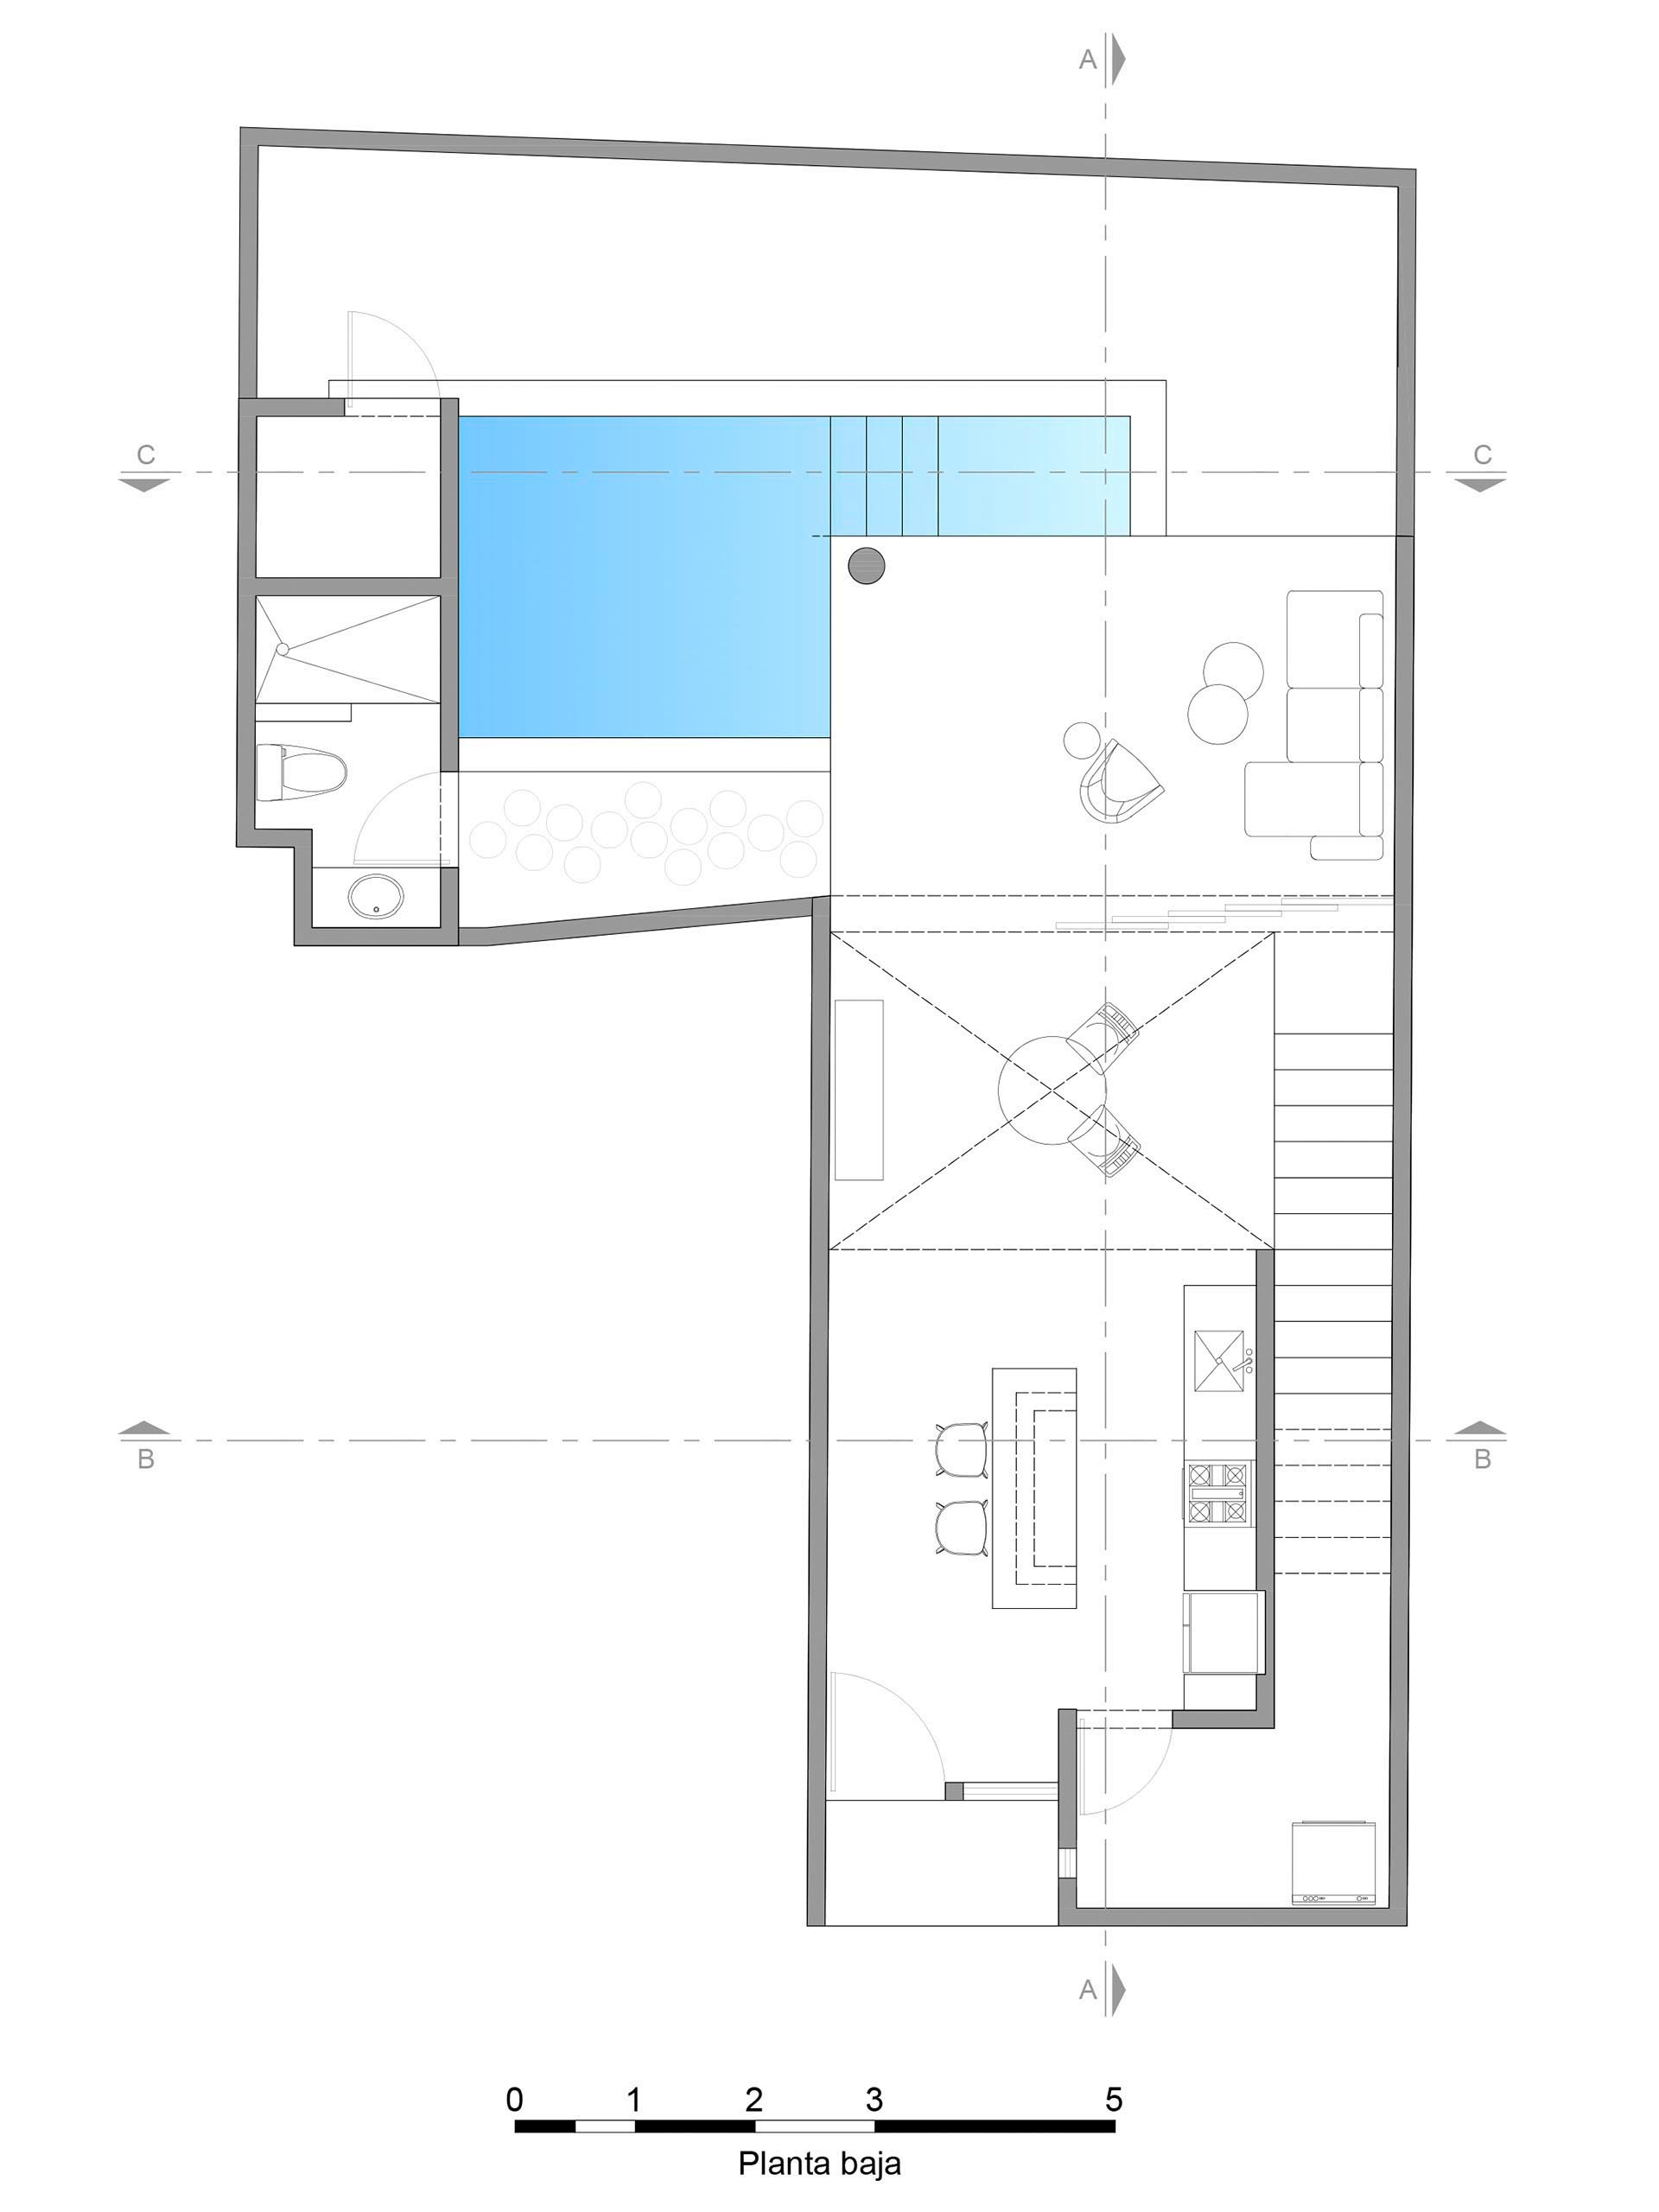 The floor plan of a modern home with a swimming pool.